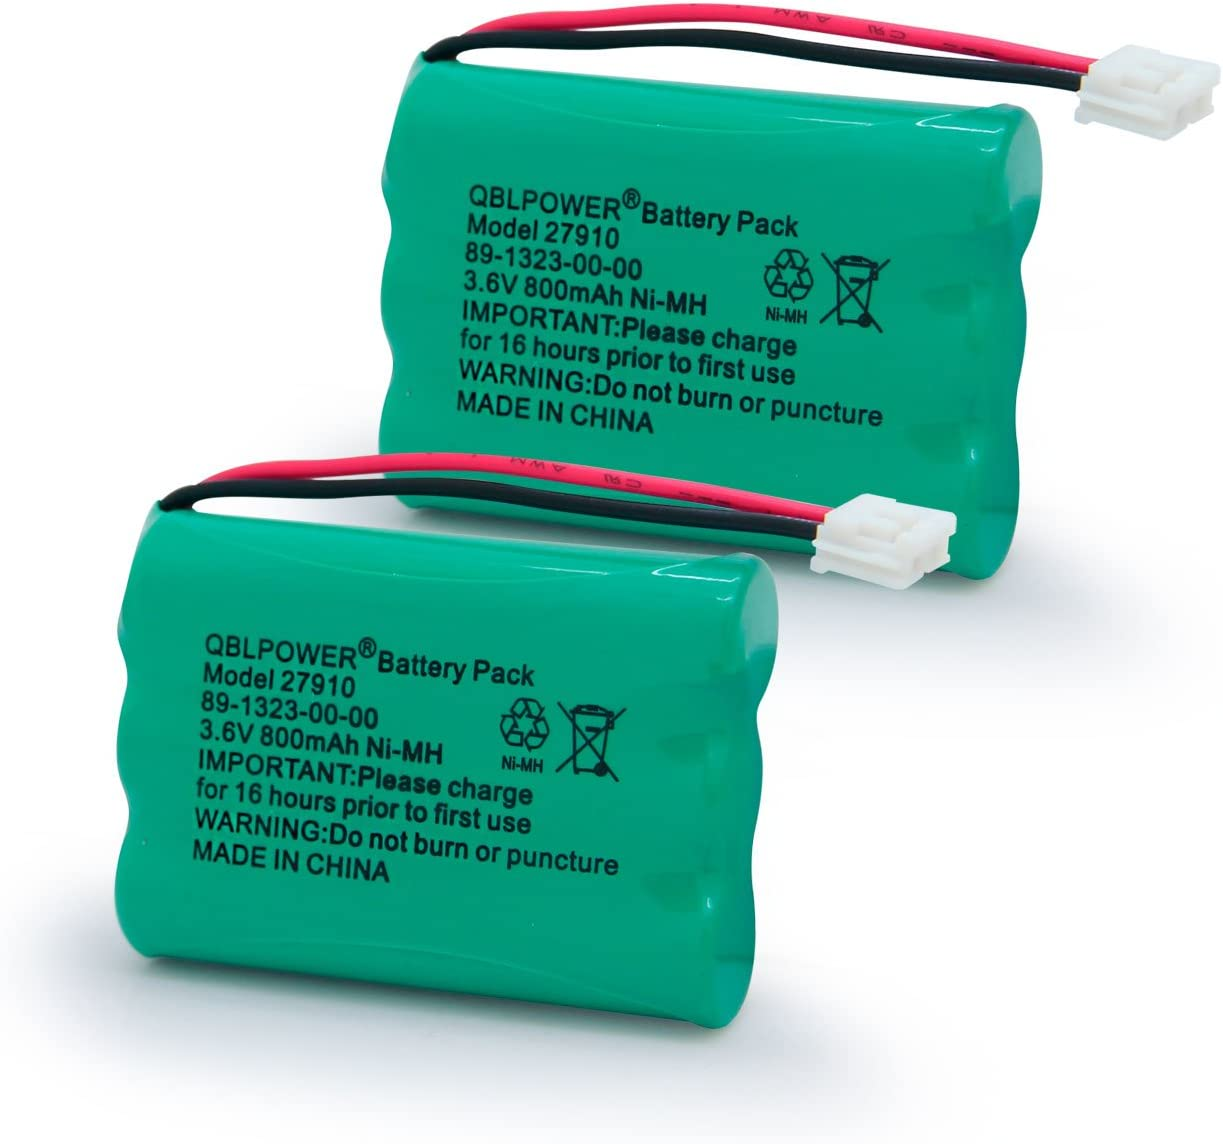 QBLPOWER 27910 Cordless Phone Battery Rechargeable Compatible with Vtech 89-1323-00-00 AT&T E1112 E2801 TL72108 Motorola SD-7501 RadioShack 23-959 Cordless Handsets 3.6V(Pack of 2)